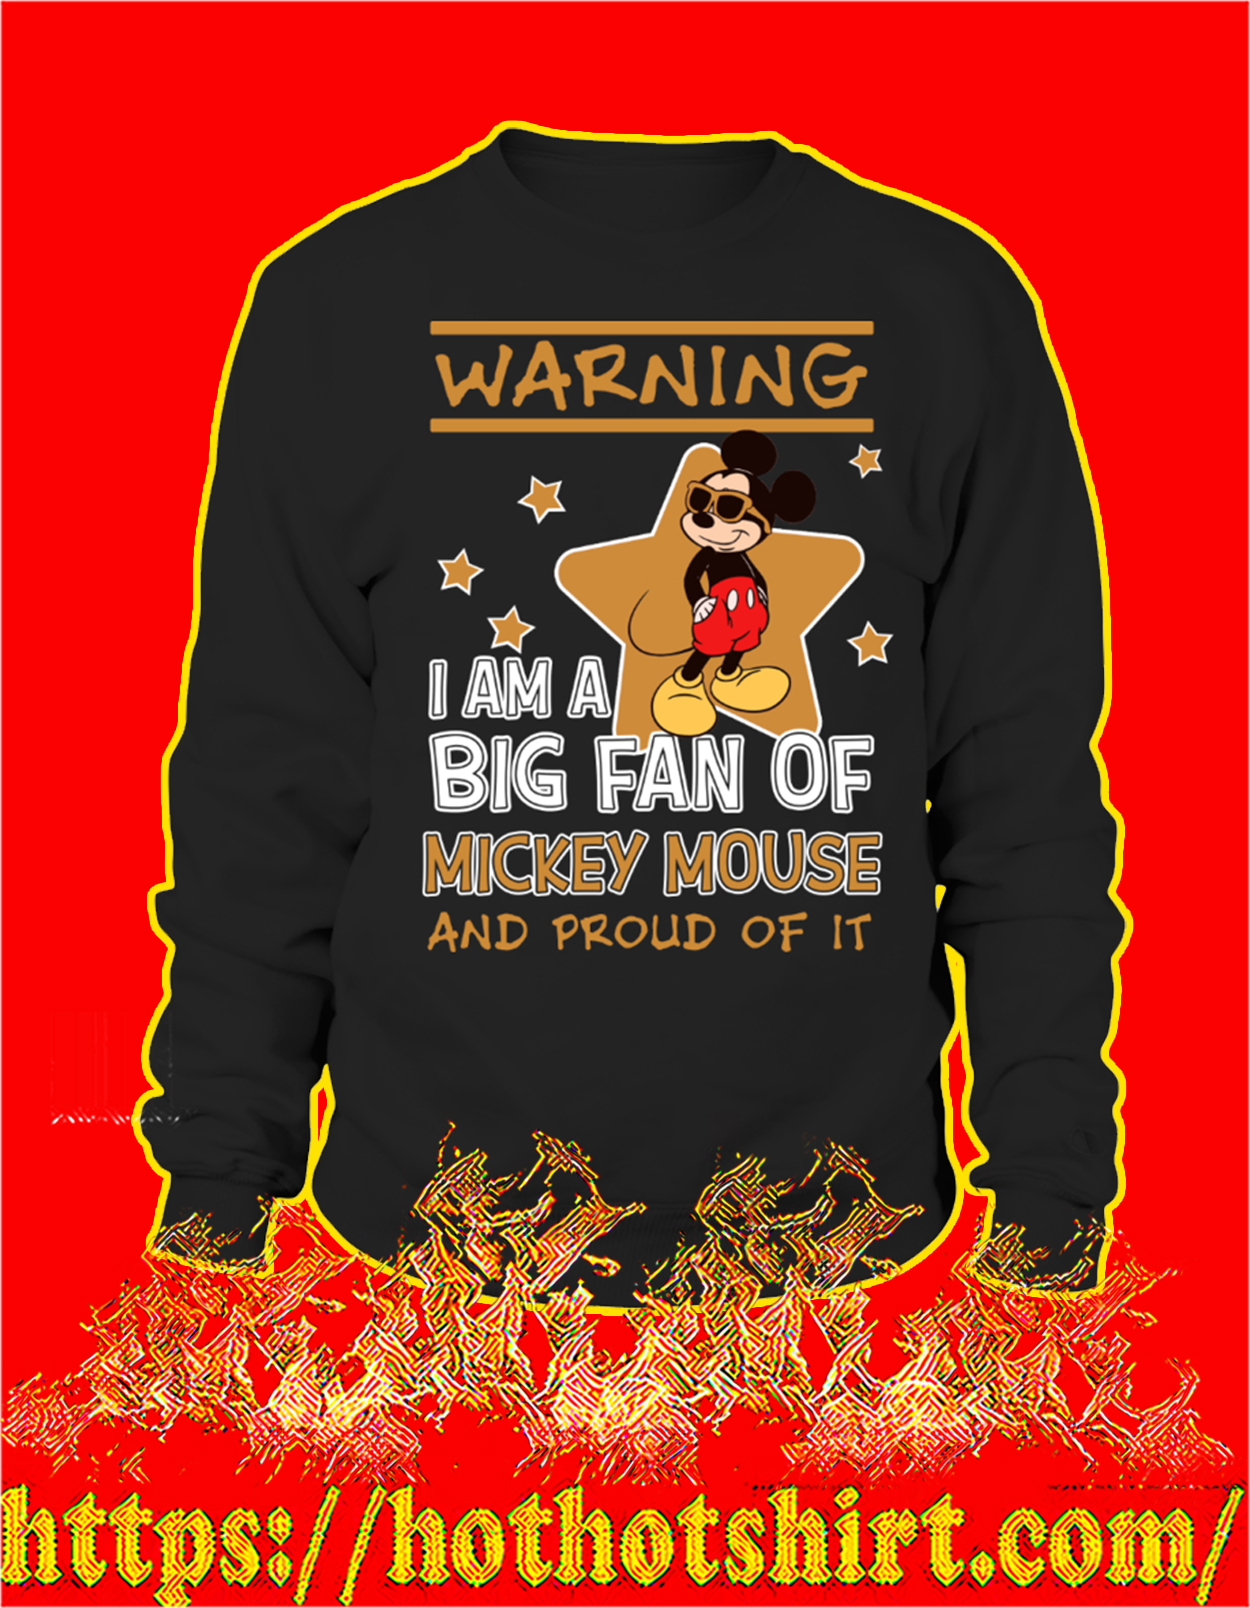 Warning I'm a big fan of mickey mouse and proud of it sweatshirt